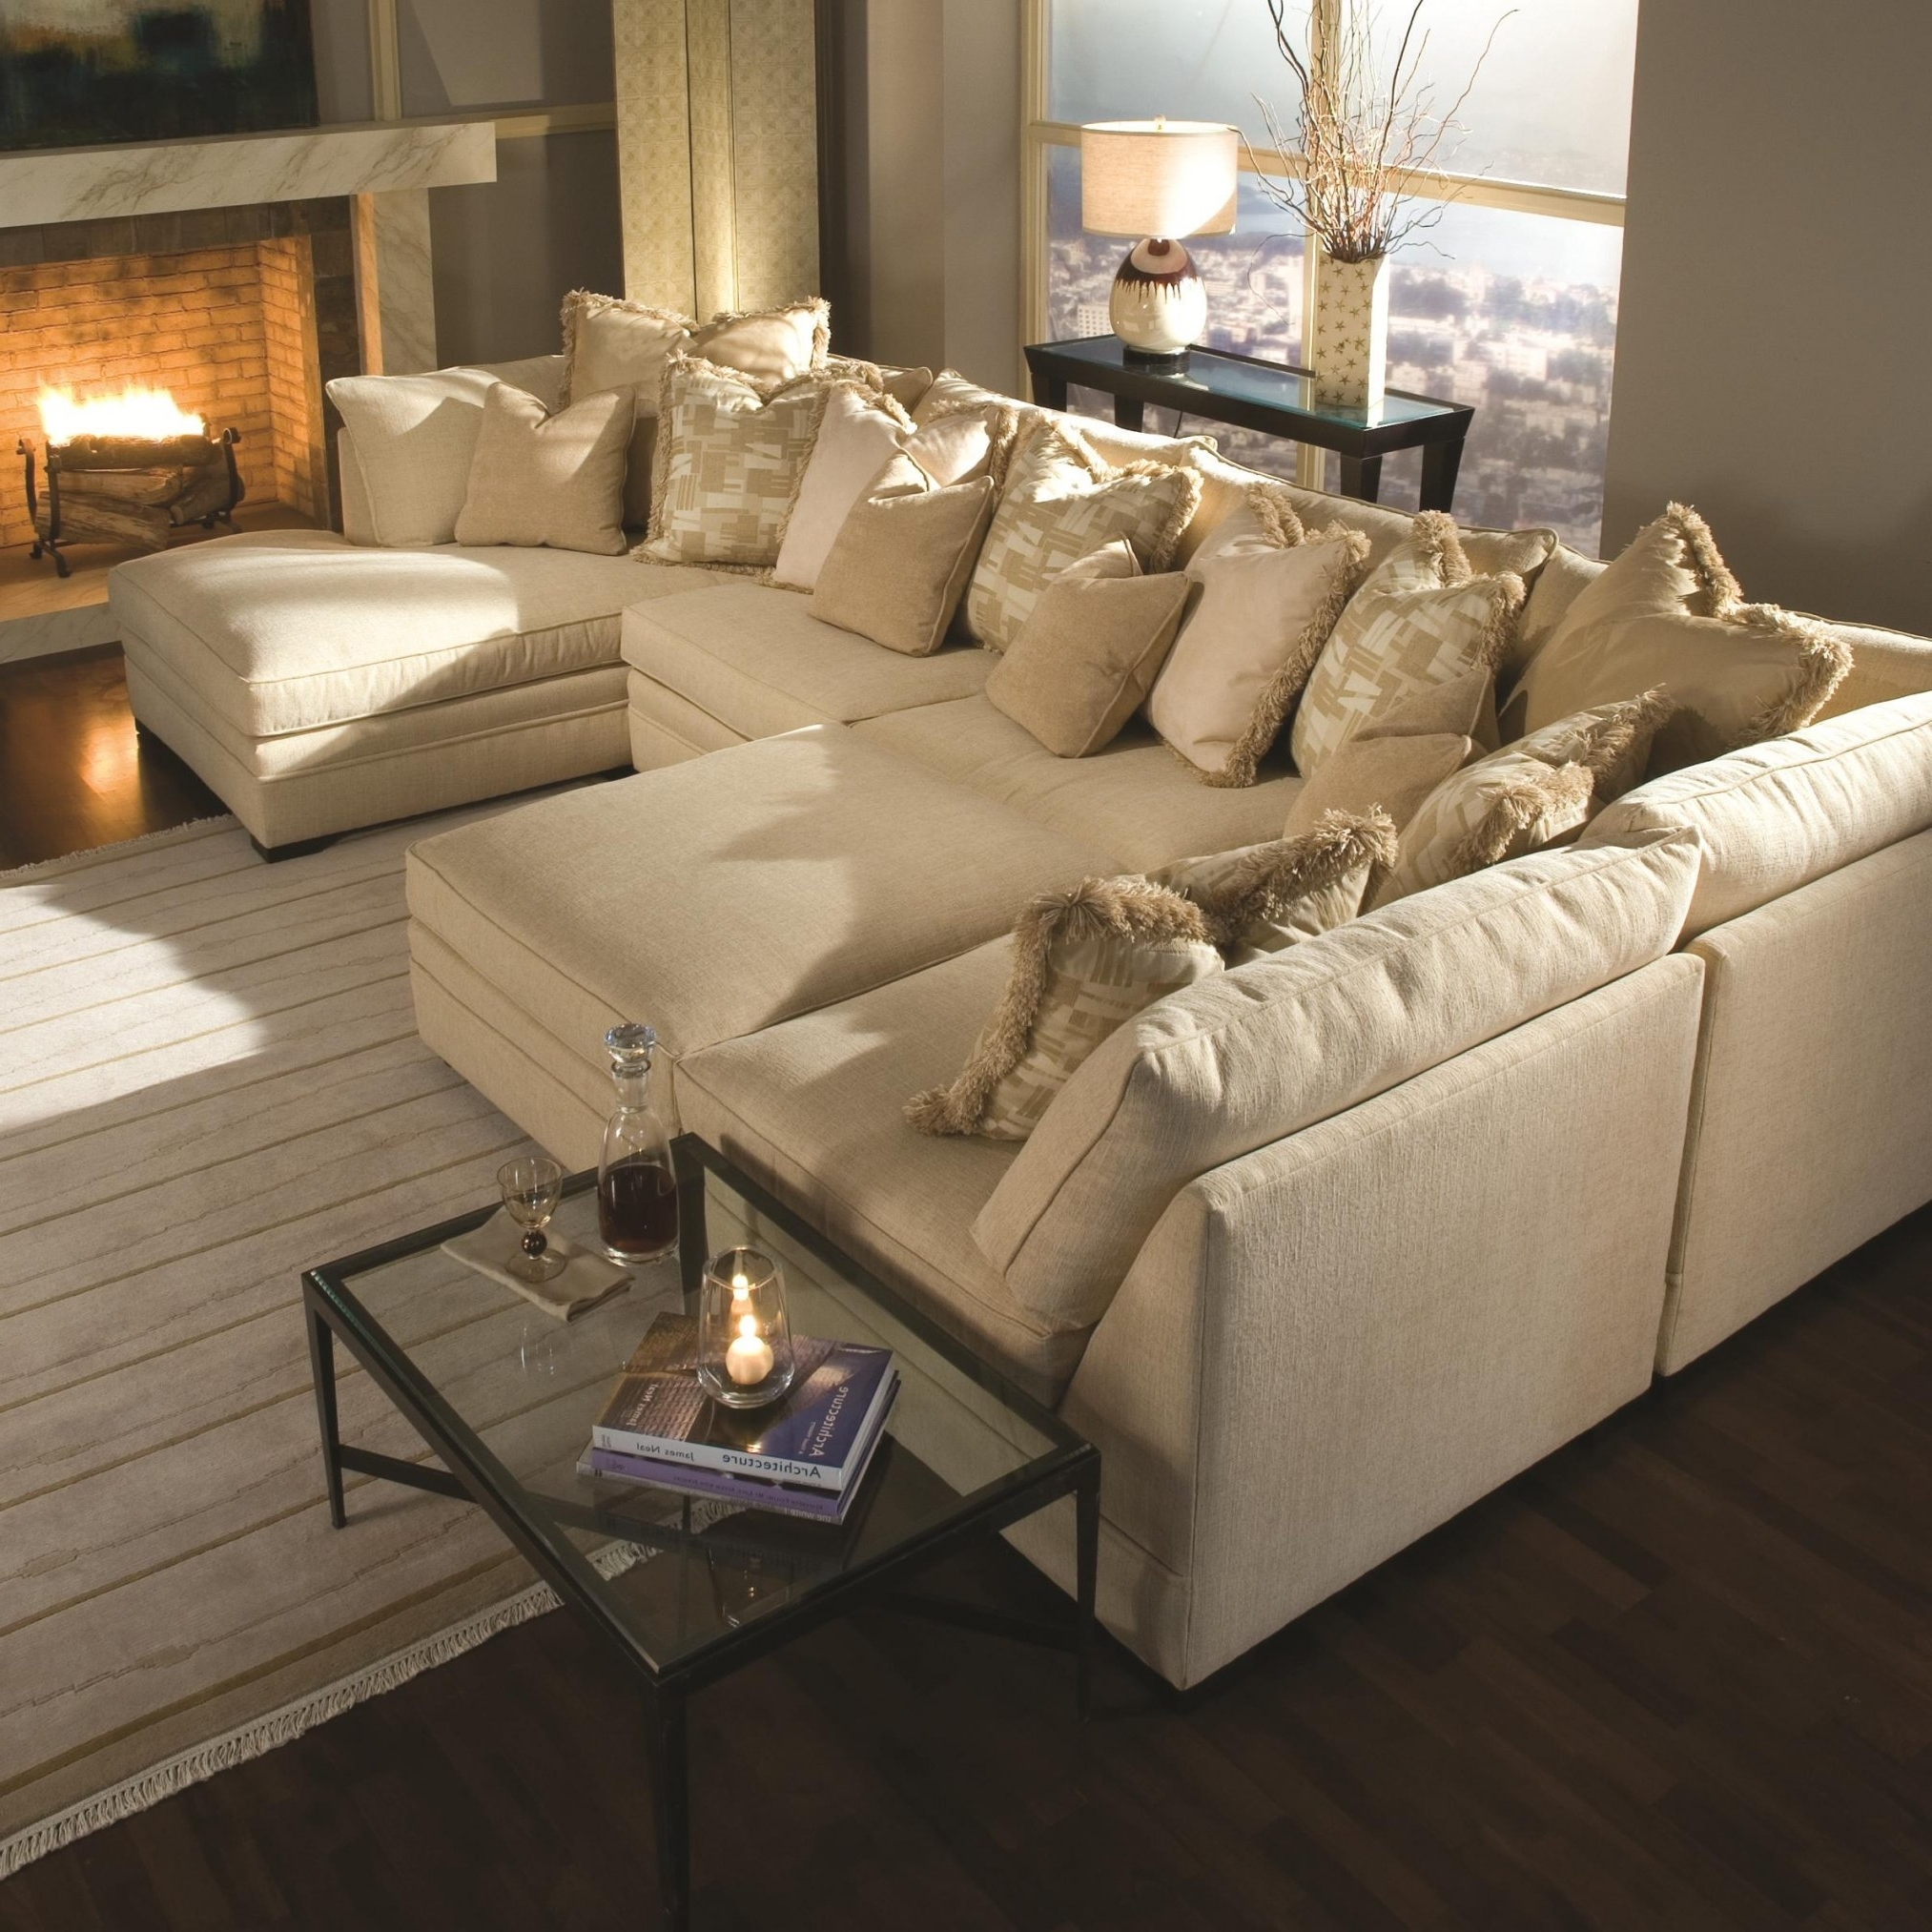 Sofa : 92 Unbelievable Double Chaise Sectional Sofa Picture With Regard To Favorite Wide Sectional Sofas (View 6 of 20)